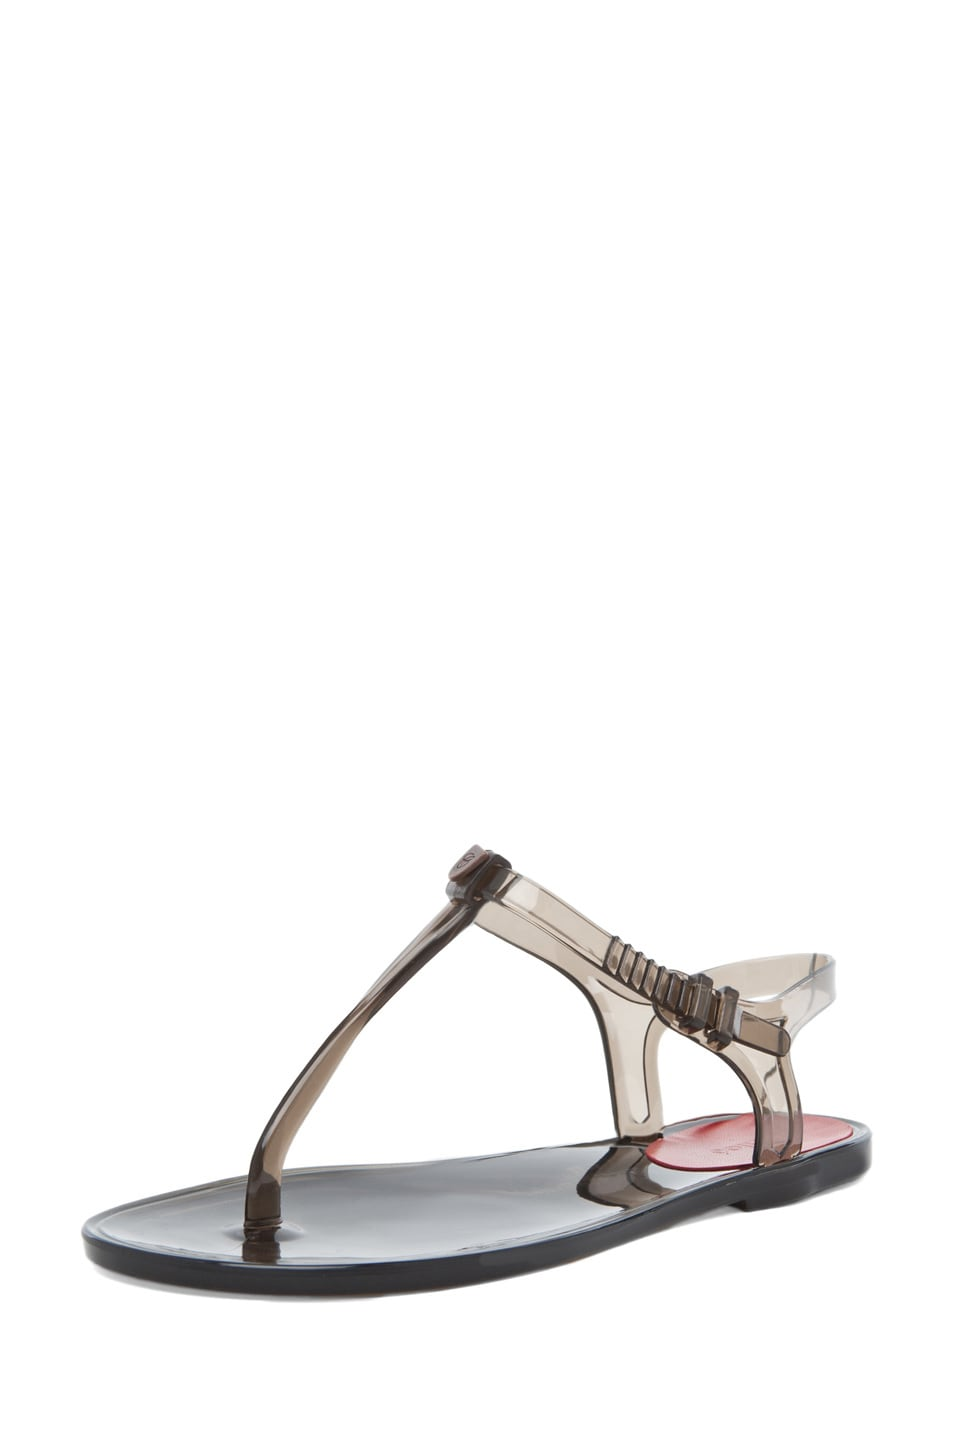 b32ce3ea788b Image 2 of Chloe Jelly Sandals in Black